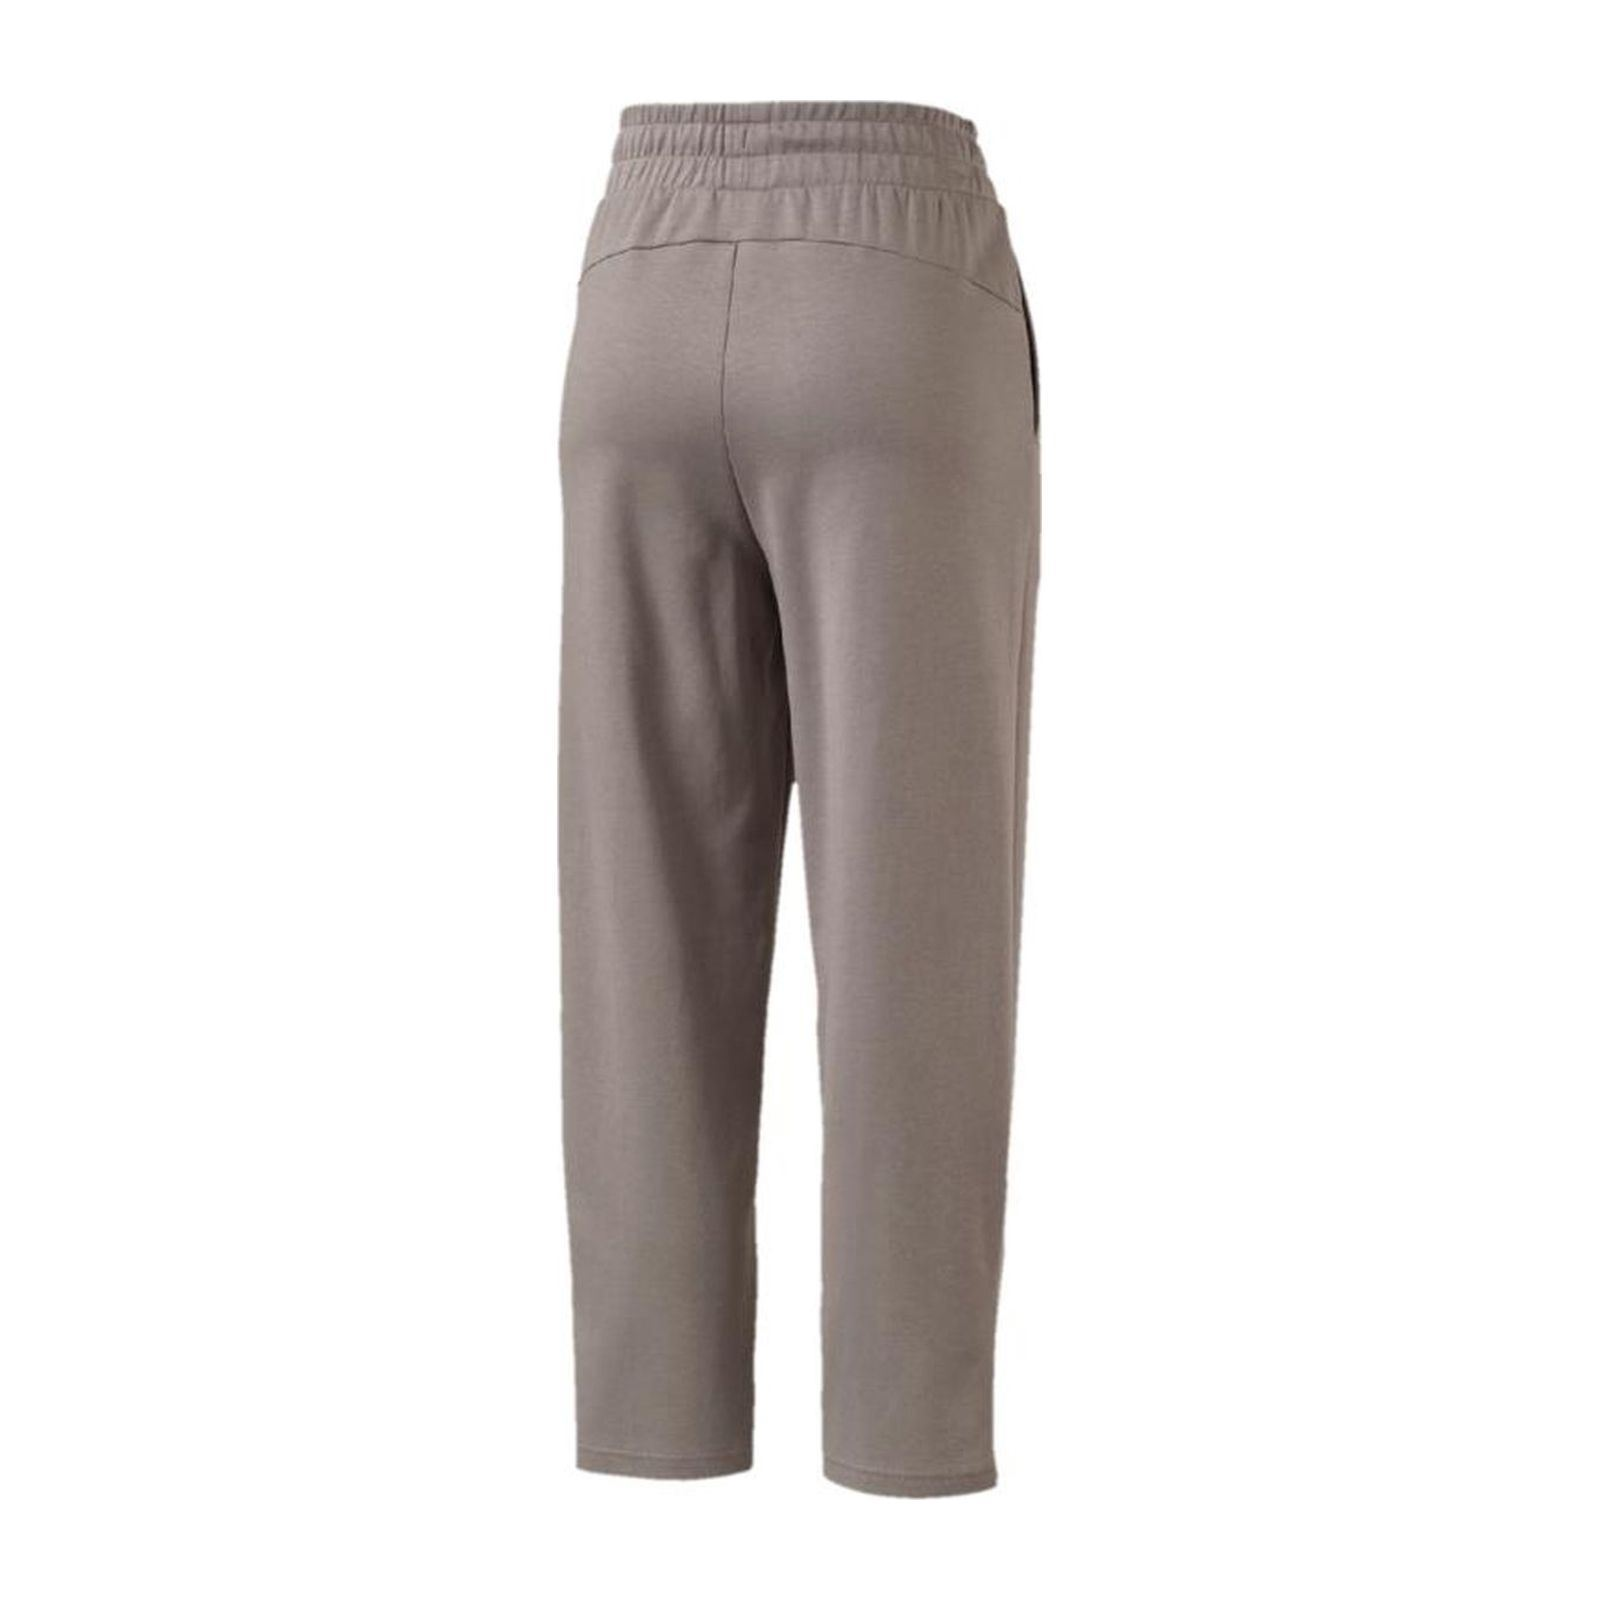 Gris Pantalon Jogging Transition Puma Brandalley fqnWOPwx